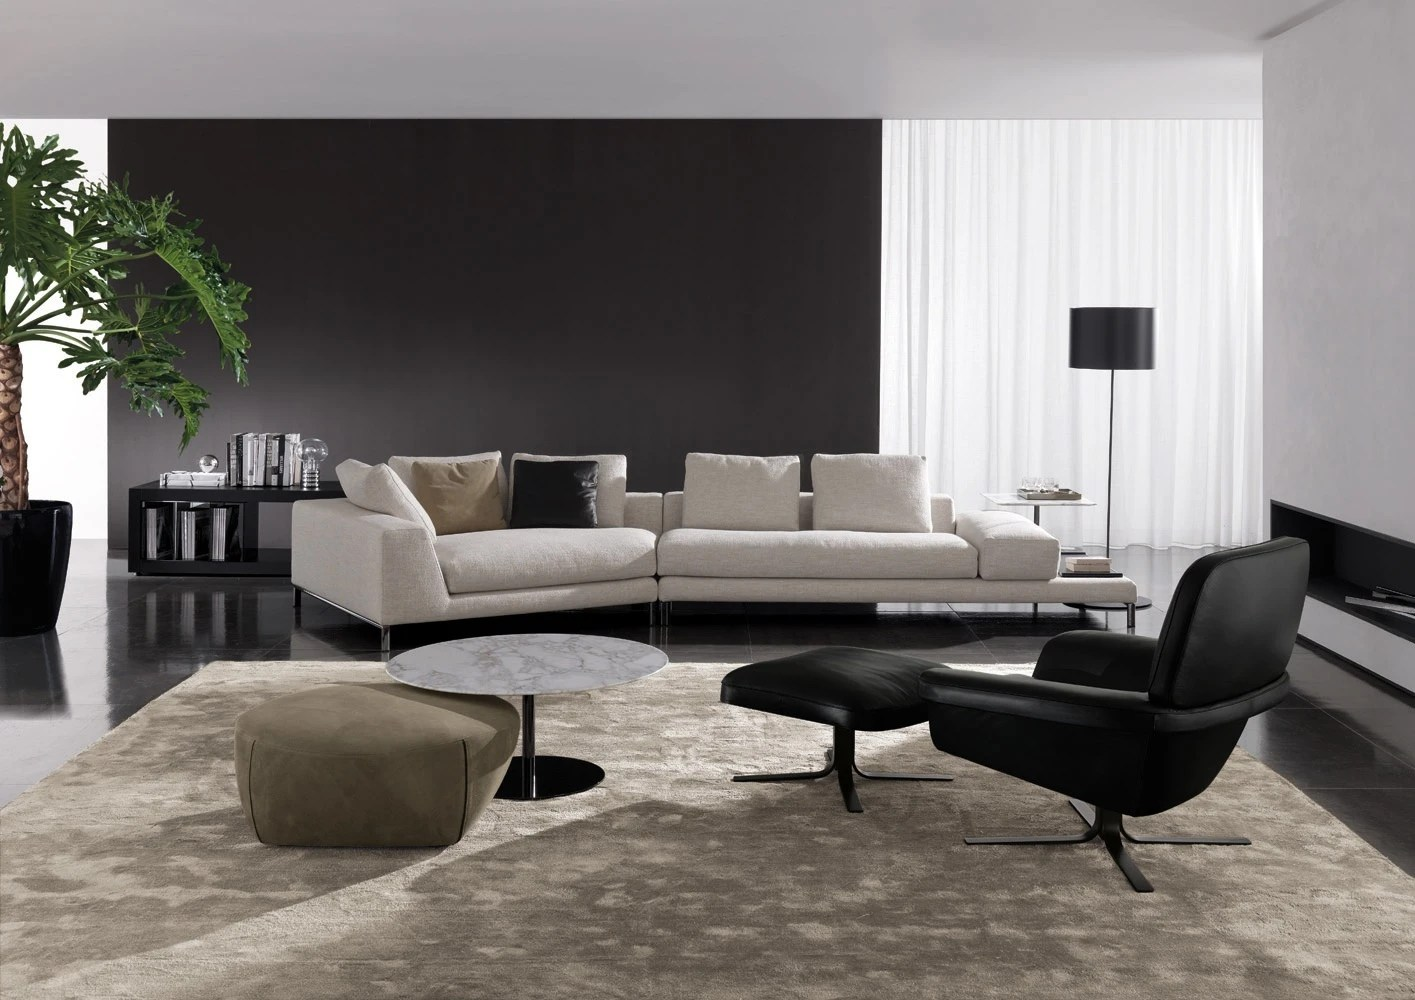 Divano Hamilton Island Minotti Modular Sofa To Relax On Hamilton Islands Minotti